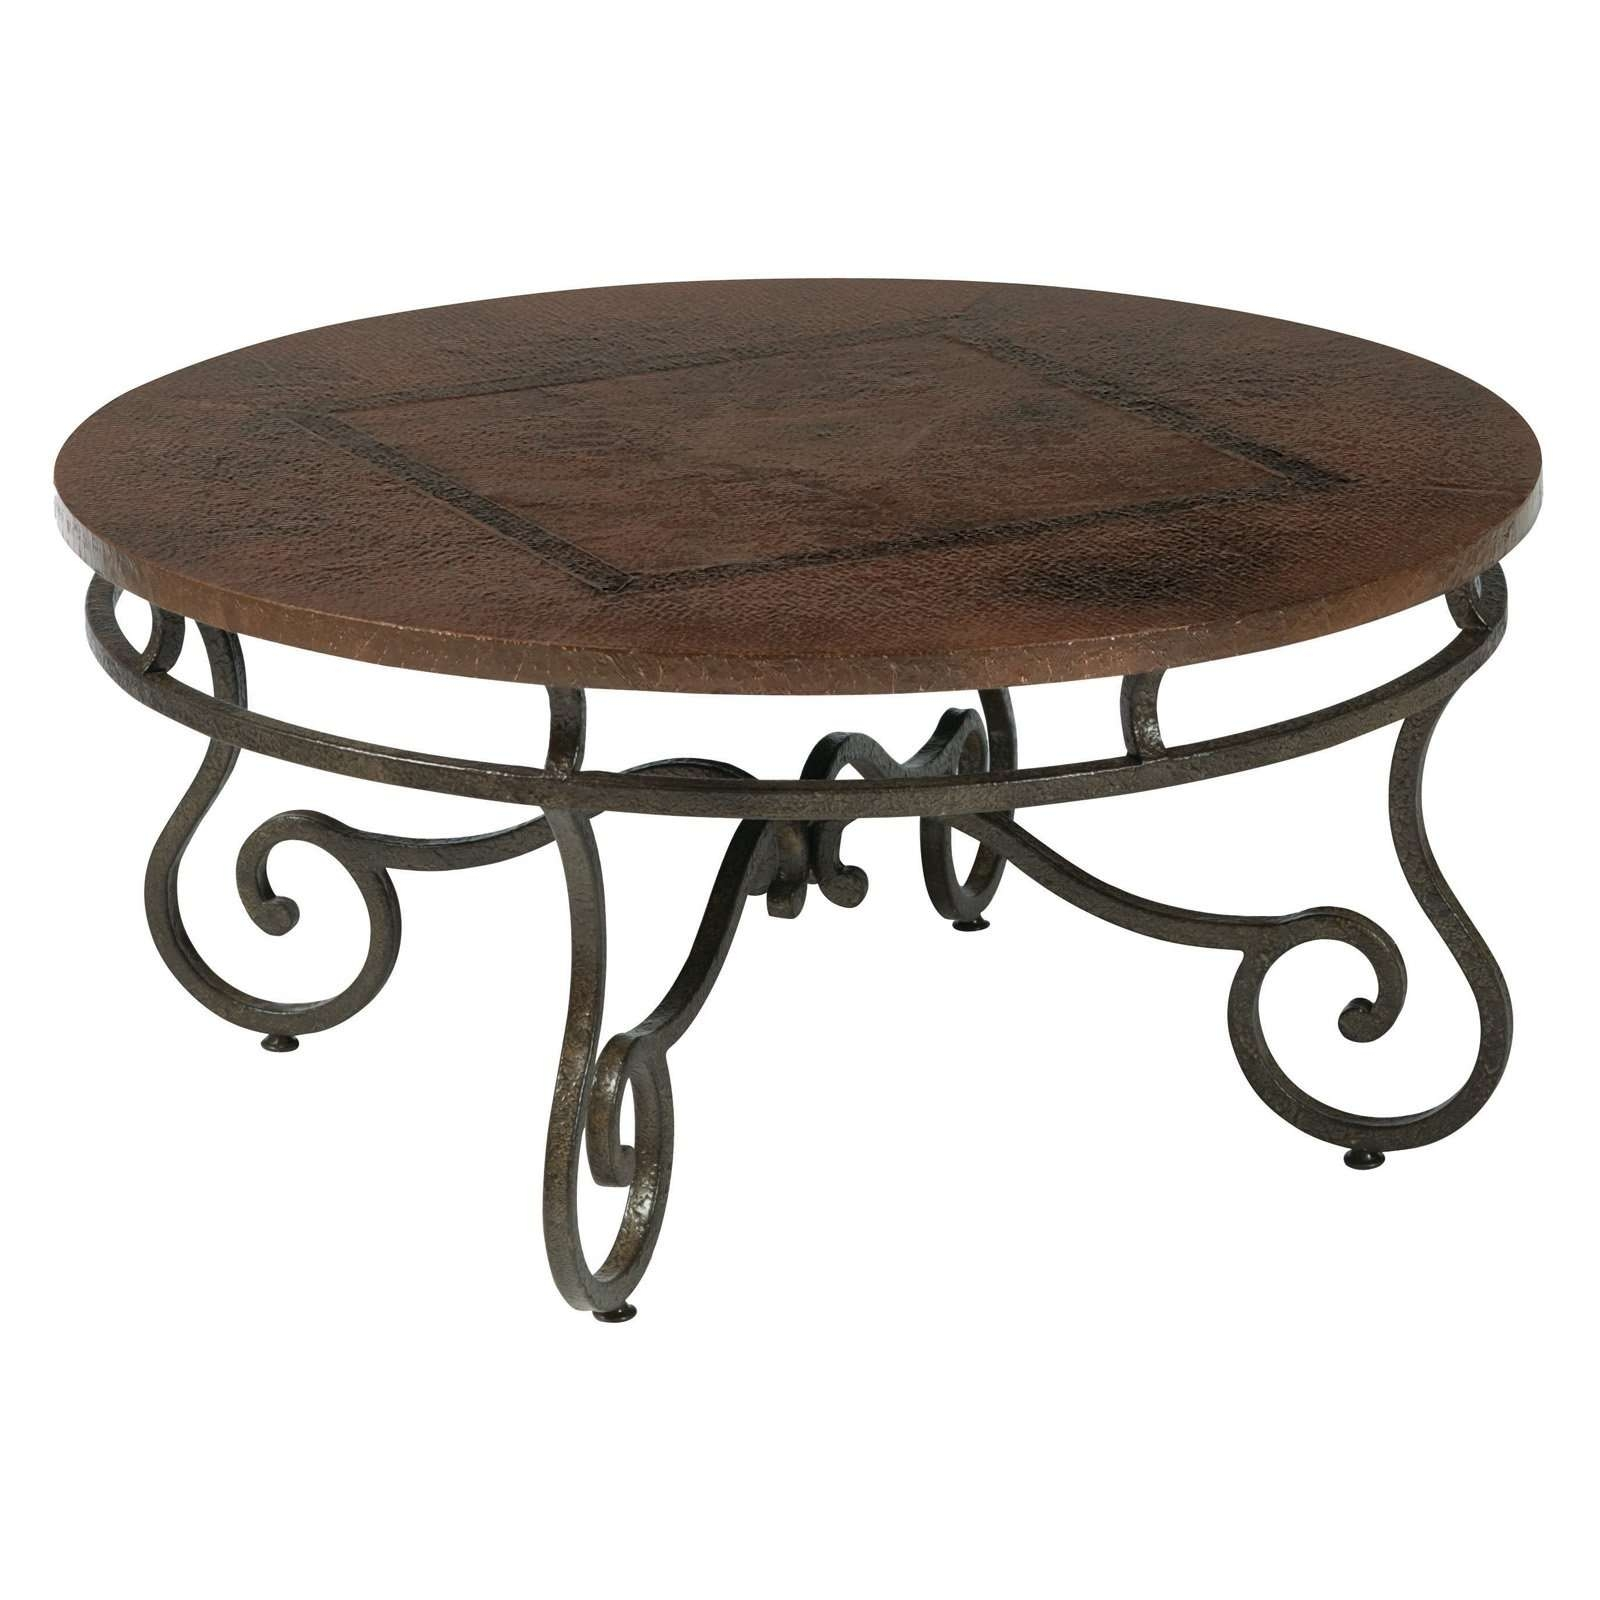 Most Recent Round Metal Coffee Tables For Old And Vintage Round Coffee Table With Wood Top Made From (View 11 of 20)